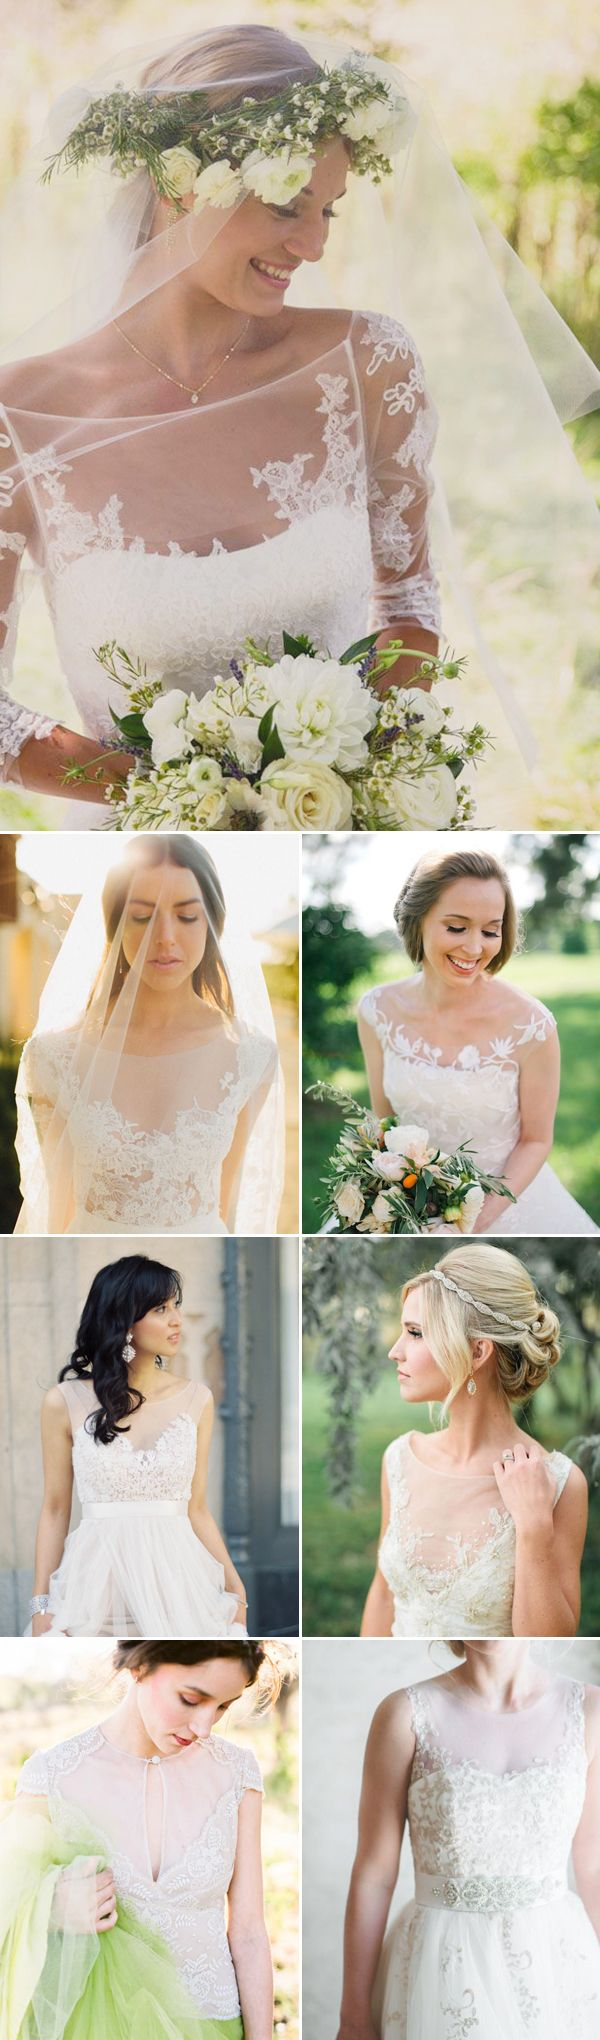 30 Gorgeous Real Brides' Illusion Gowns - Illusion Neckline